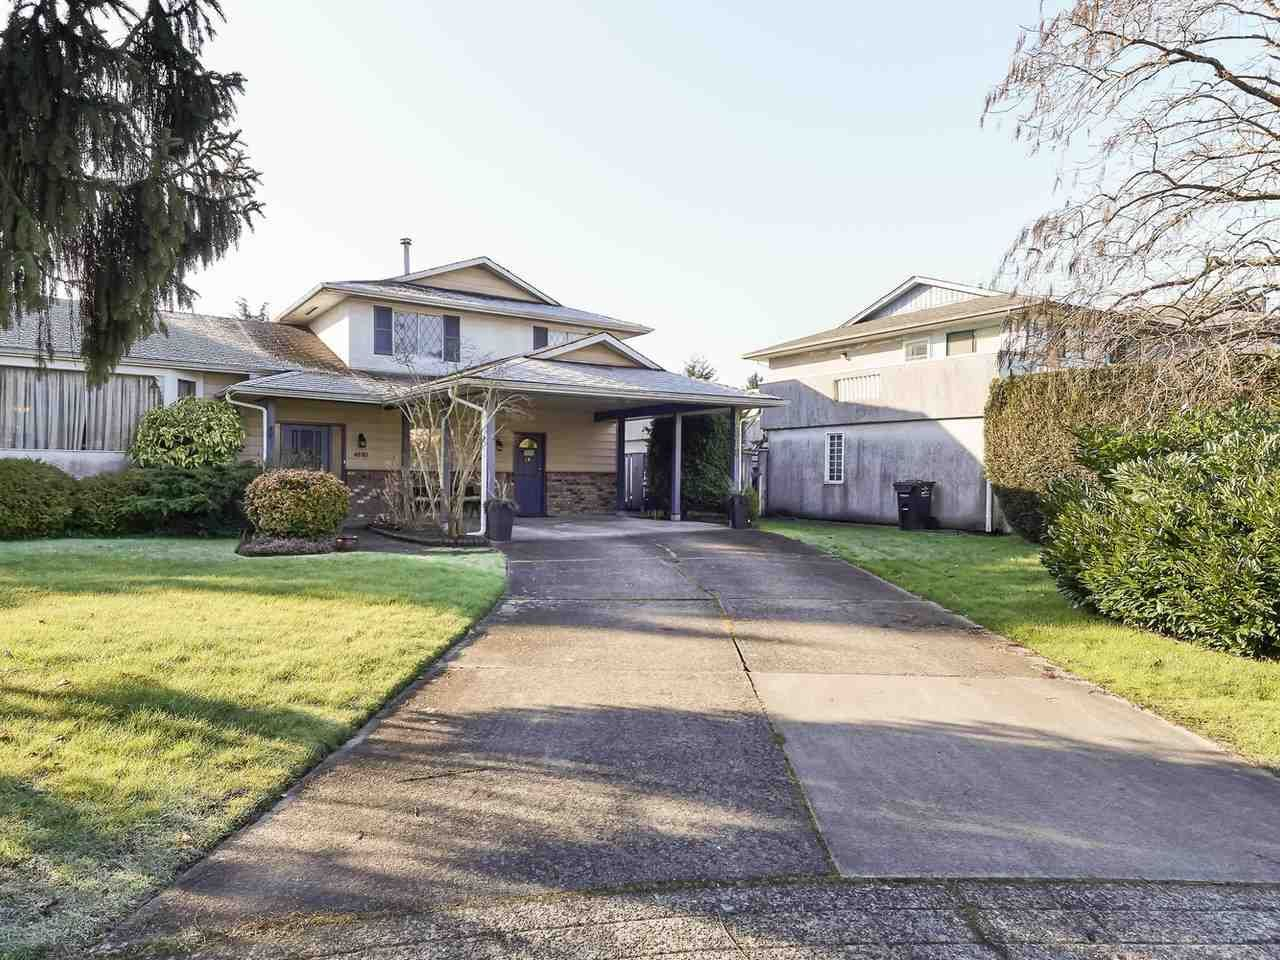 Photo 2: Photos: 4880 FORTUNE AVENUE in Richmond: Steveston North House for sale : MLS®# R2435063